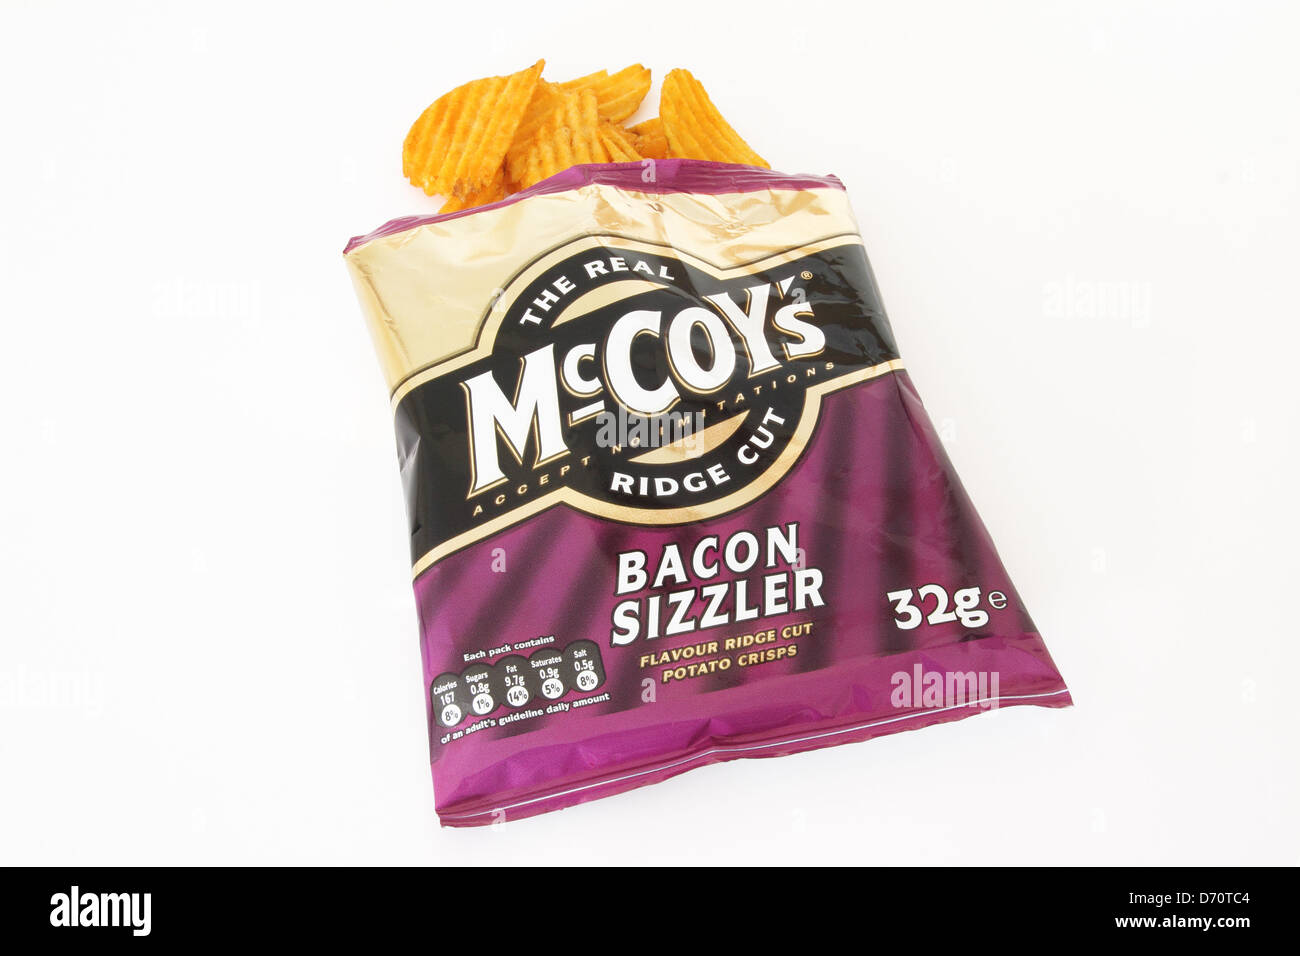 Packet of McCoy's Crisps on a White Background - Stock Image